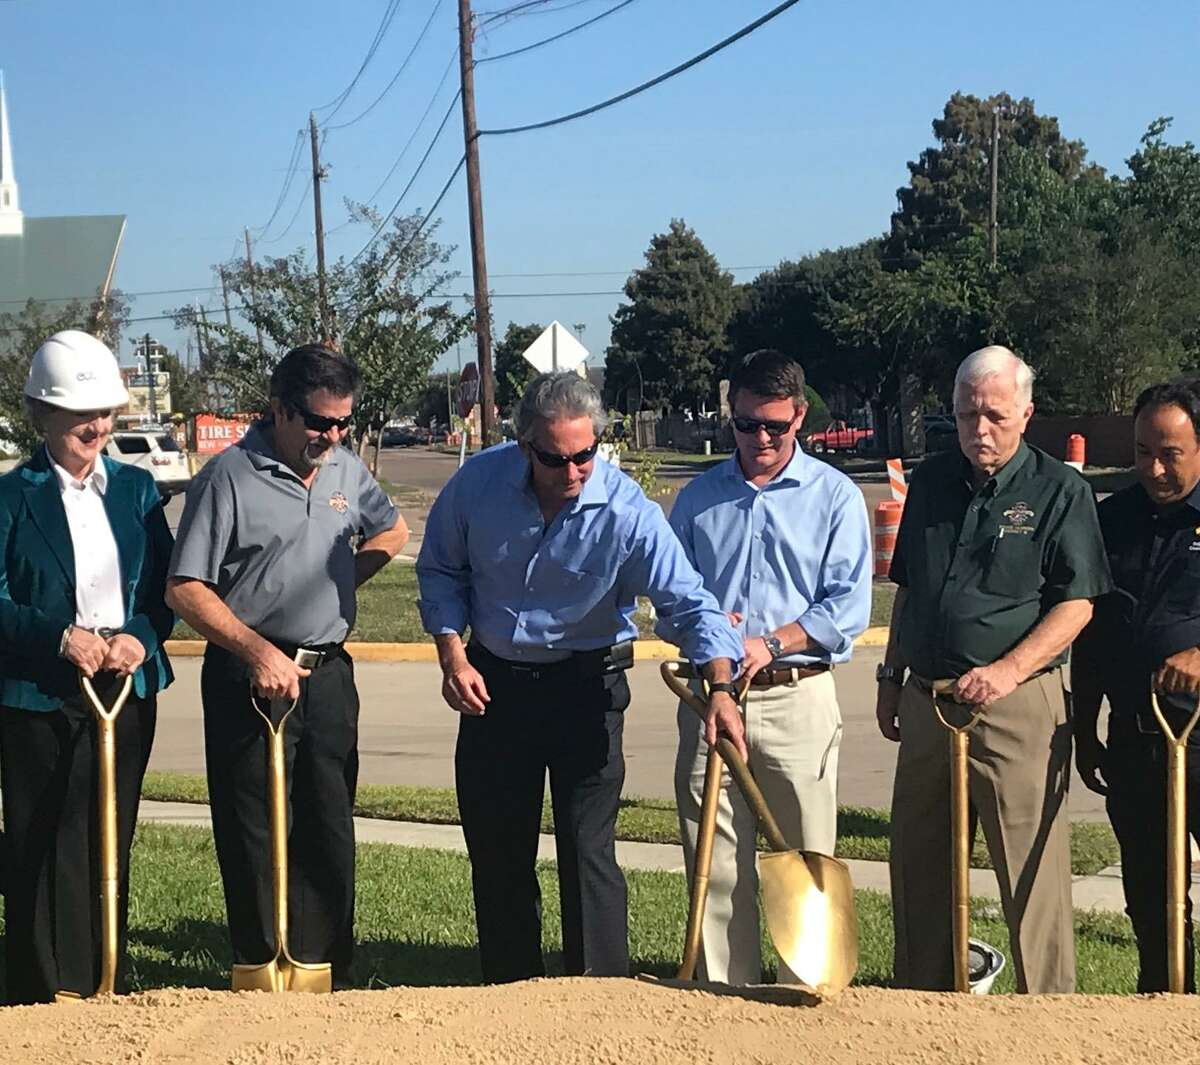 Pasadena EDC Board Member, Marilyn Wilkins; Councilman Cary Bass; Mayor Jeff Wagner; Harris County Commissioner Jack Morman; Councilmen Bruce Leamon and Felipe Villarreal commemorate work starting to Richey Street in the north part of the city at Sunset Park, Oct. 30, which will include added lanes and drainage improvements.